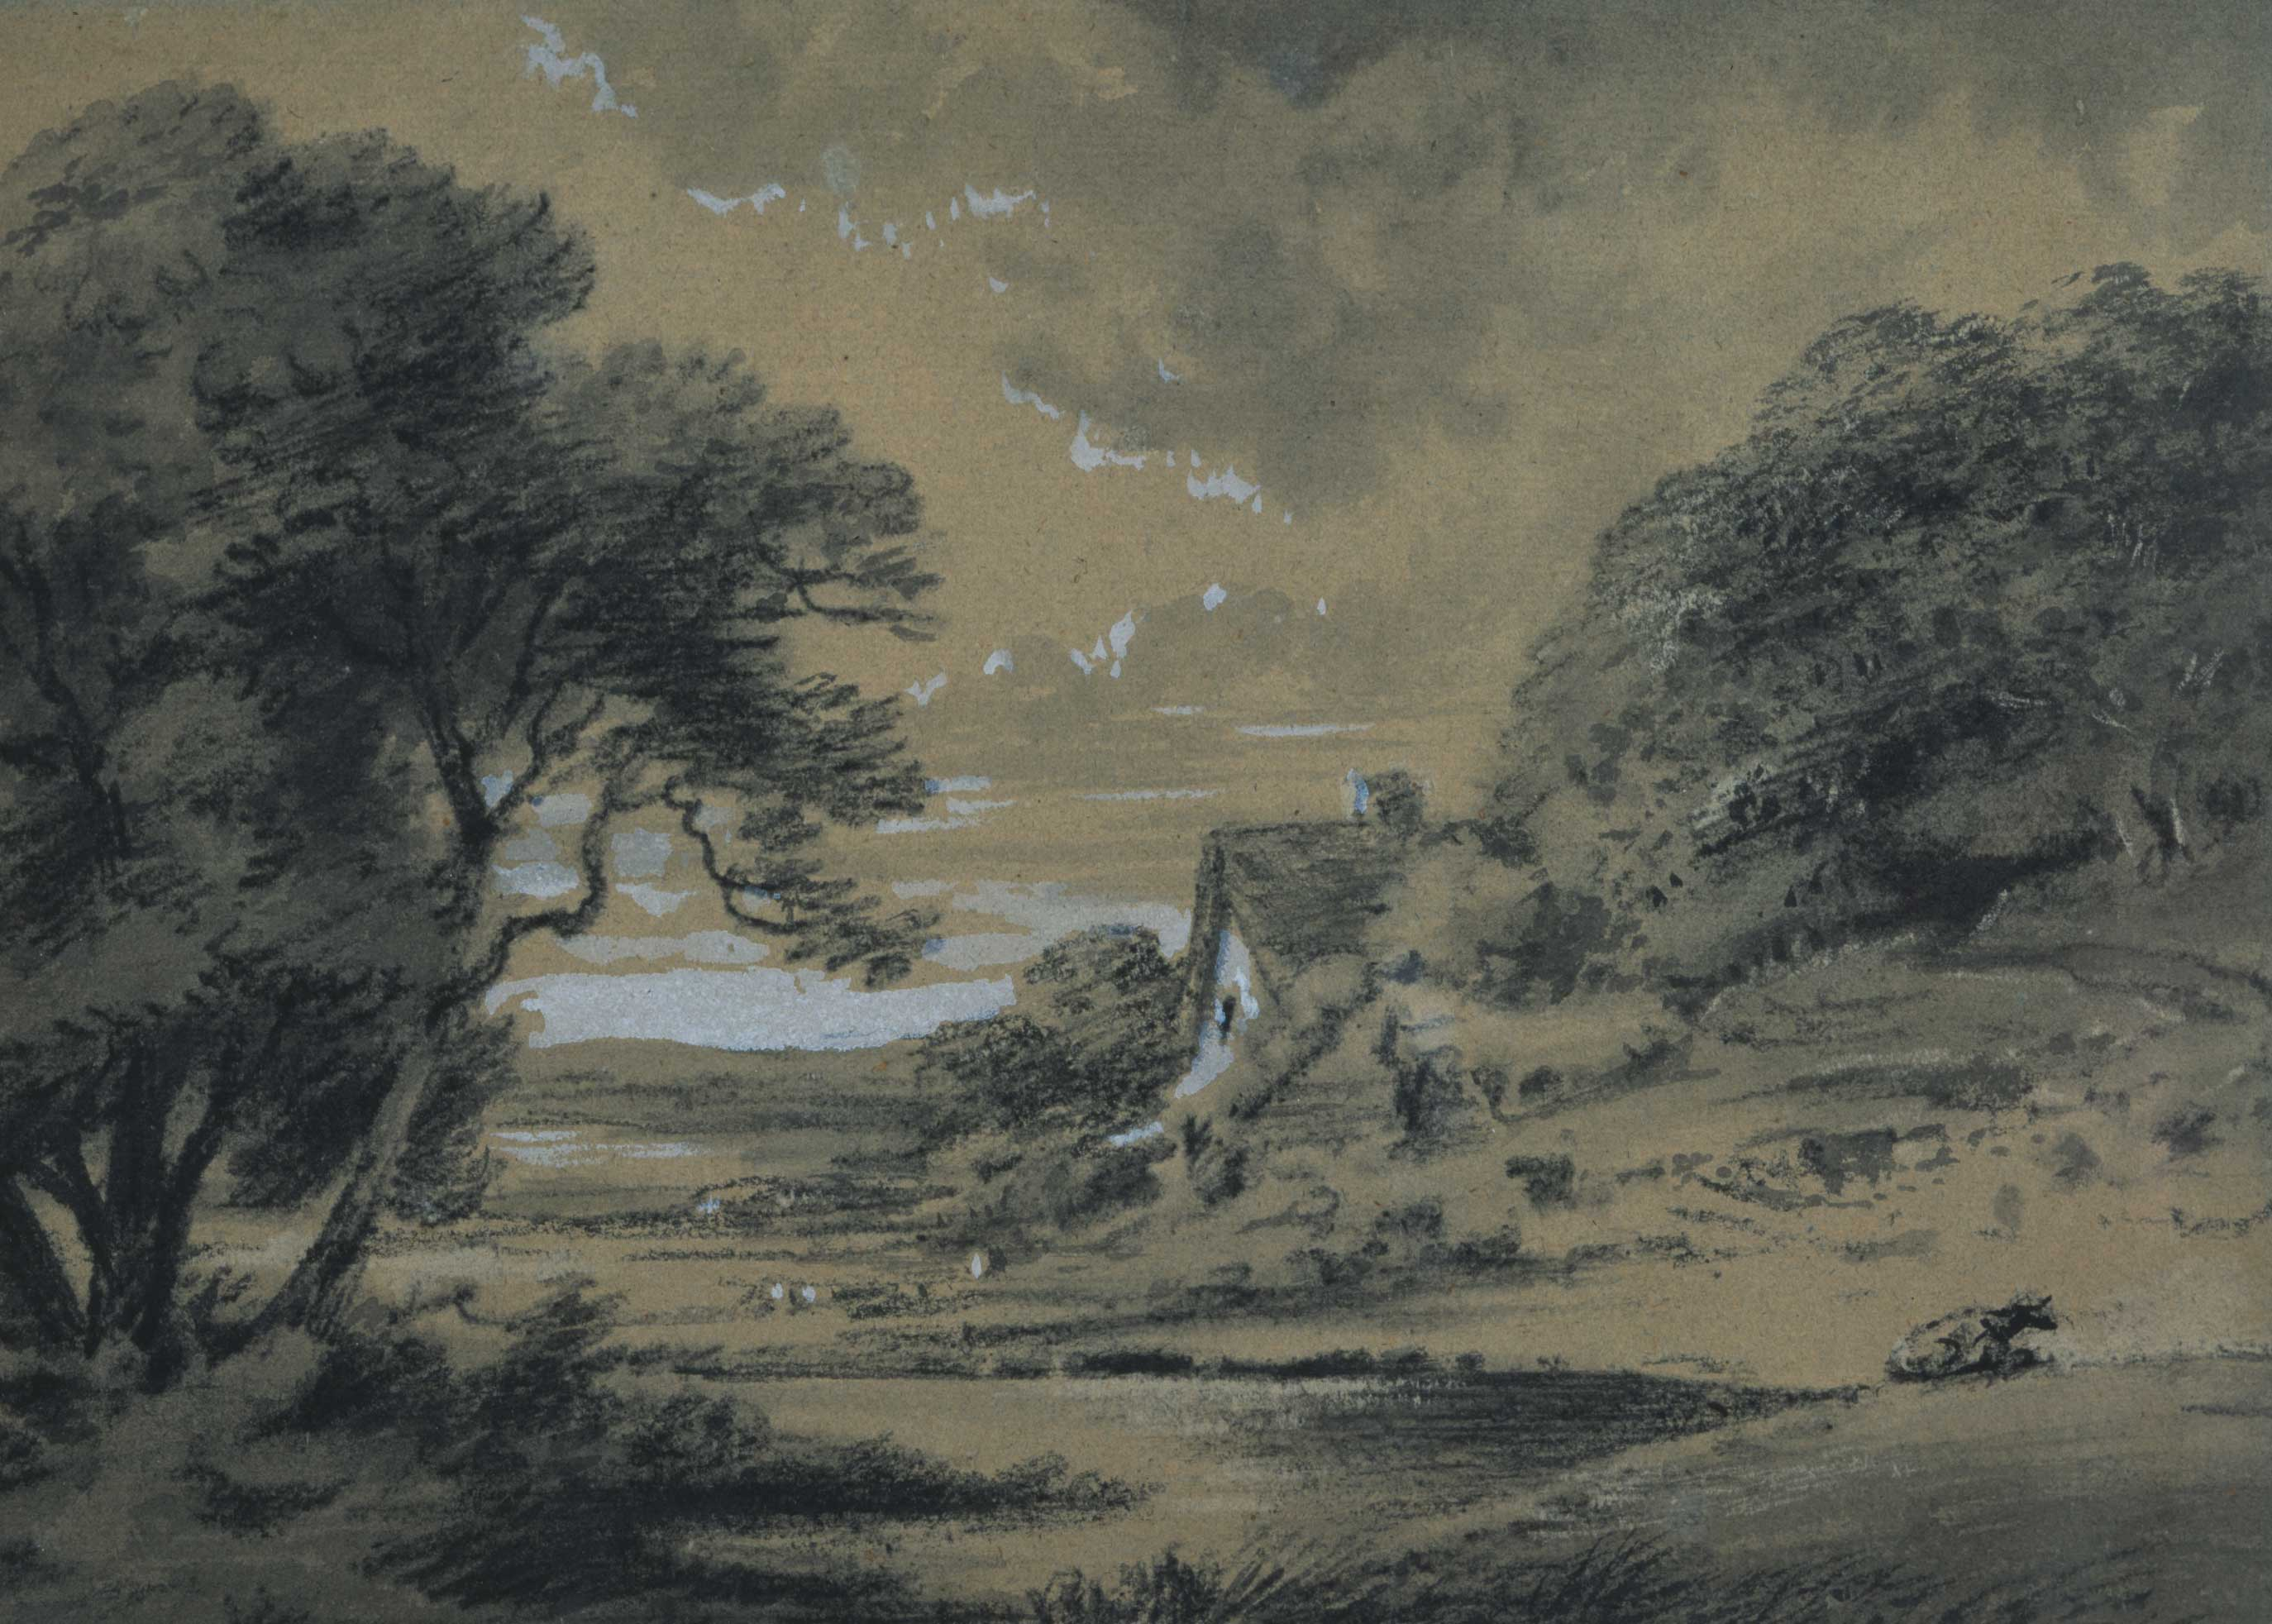 Landscape with a cottage by a river